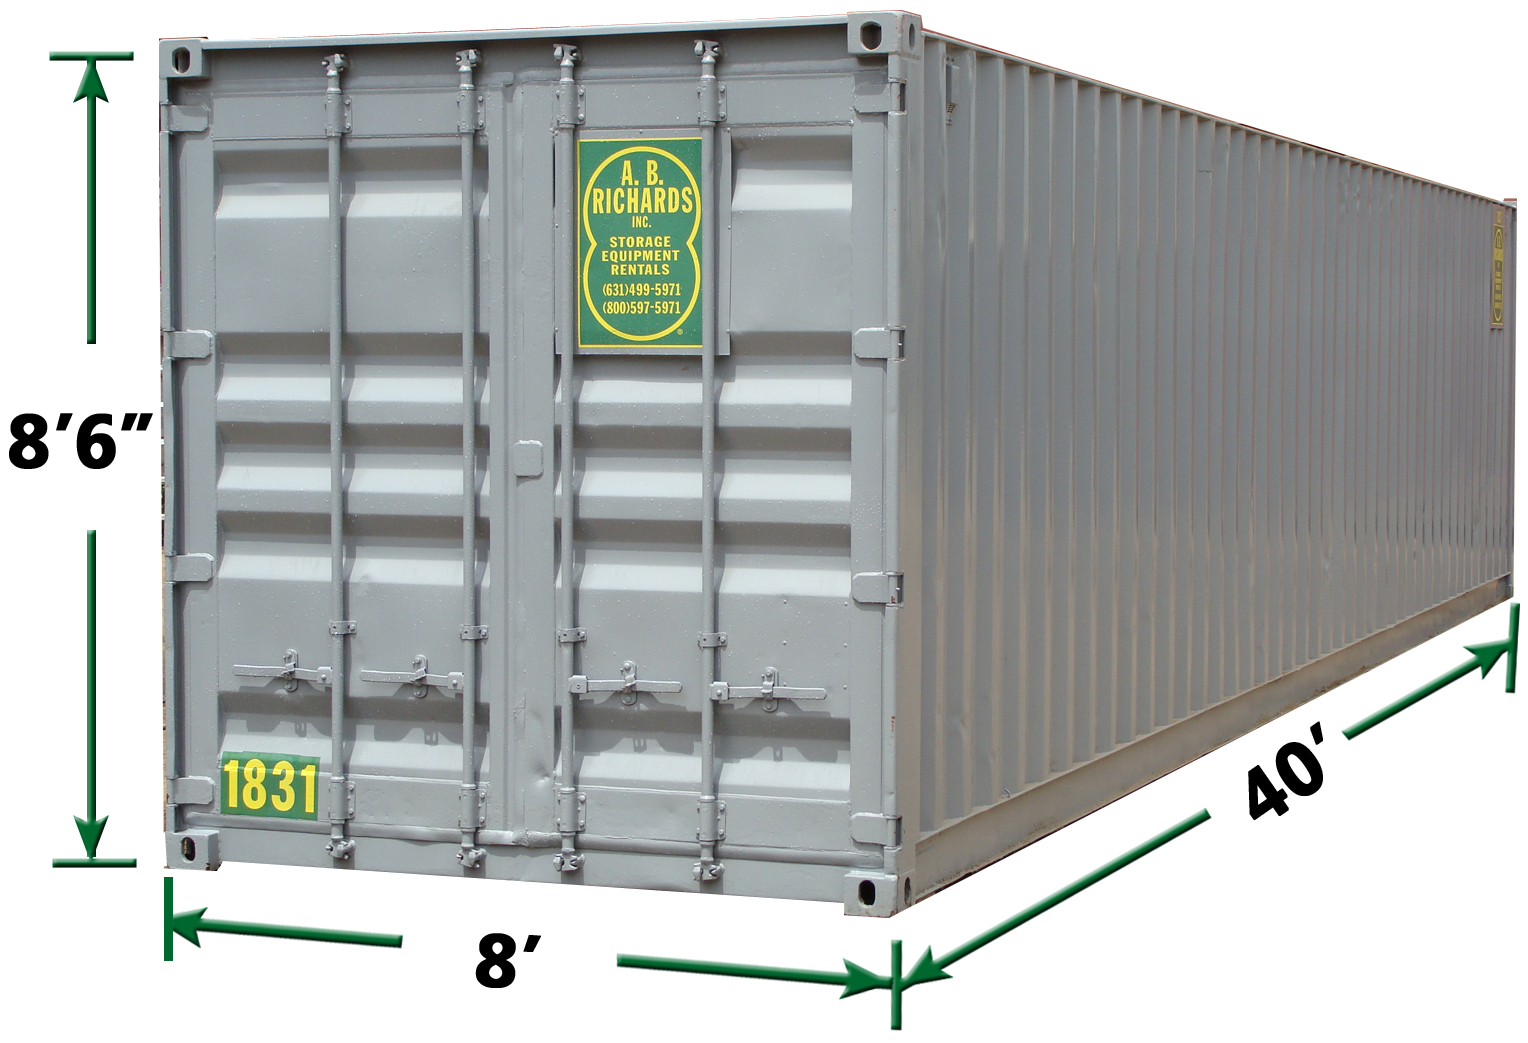 storage containers dimensions